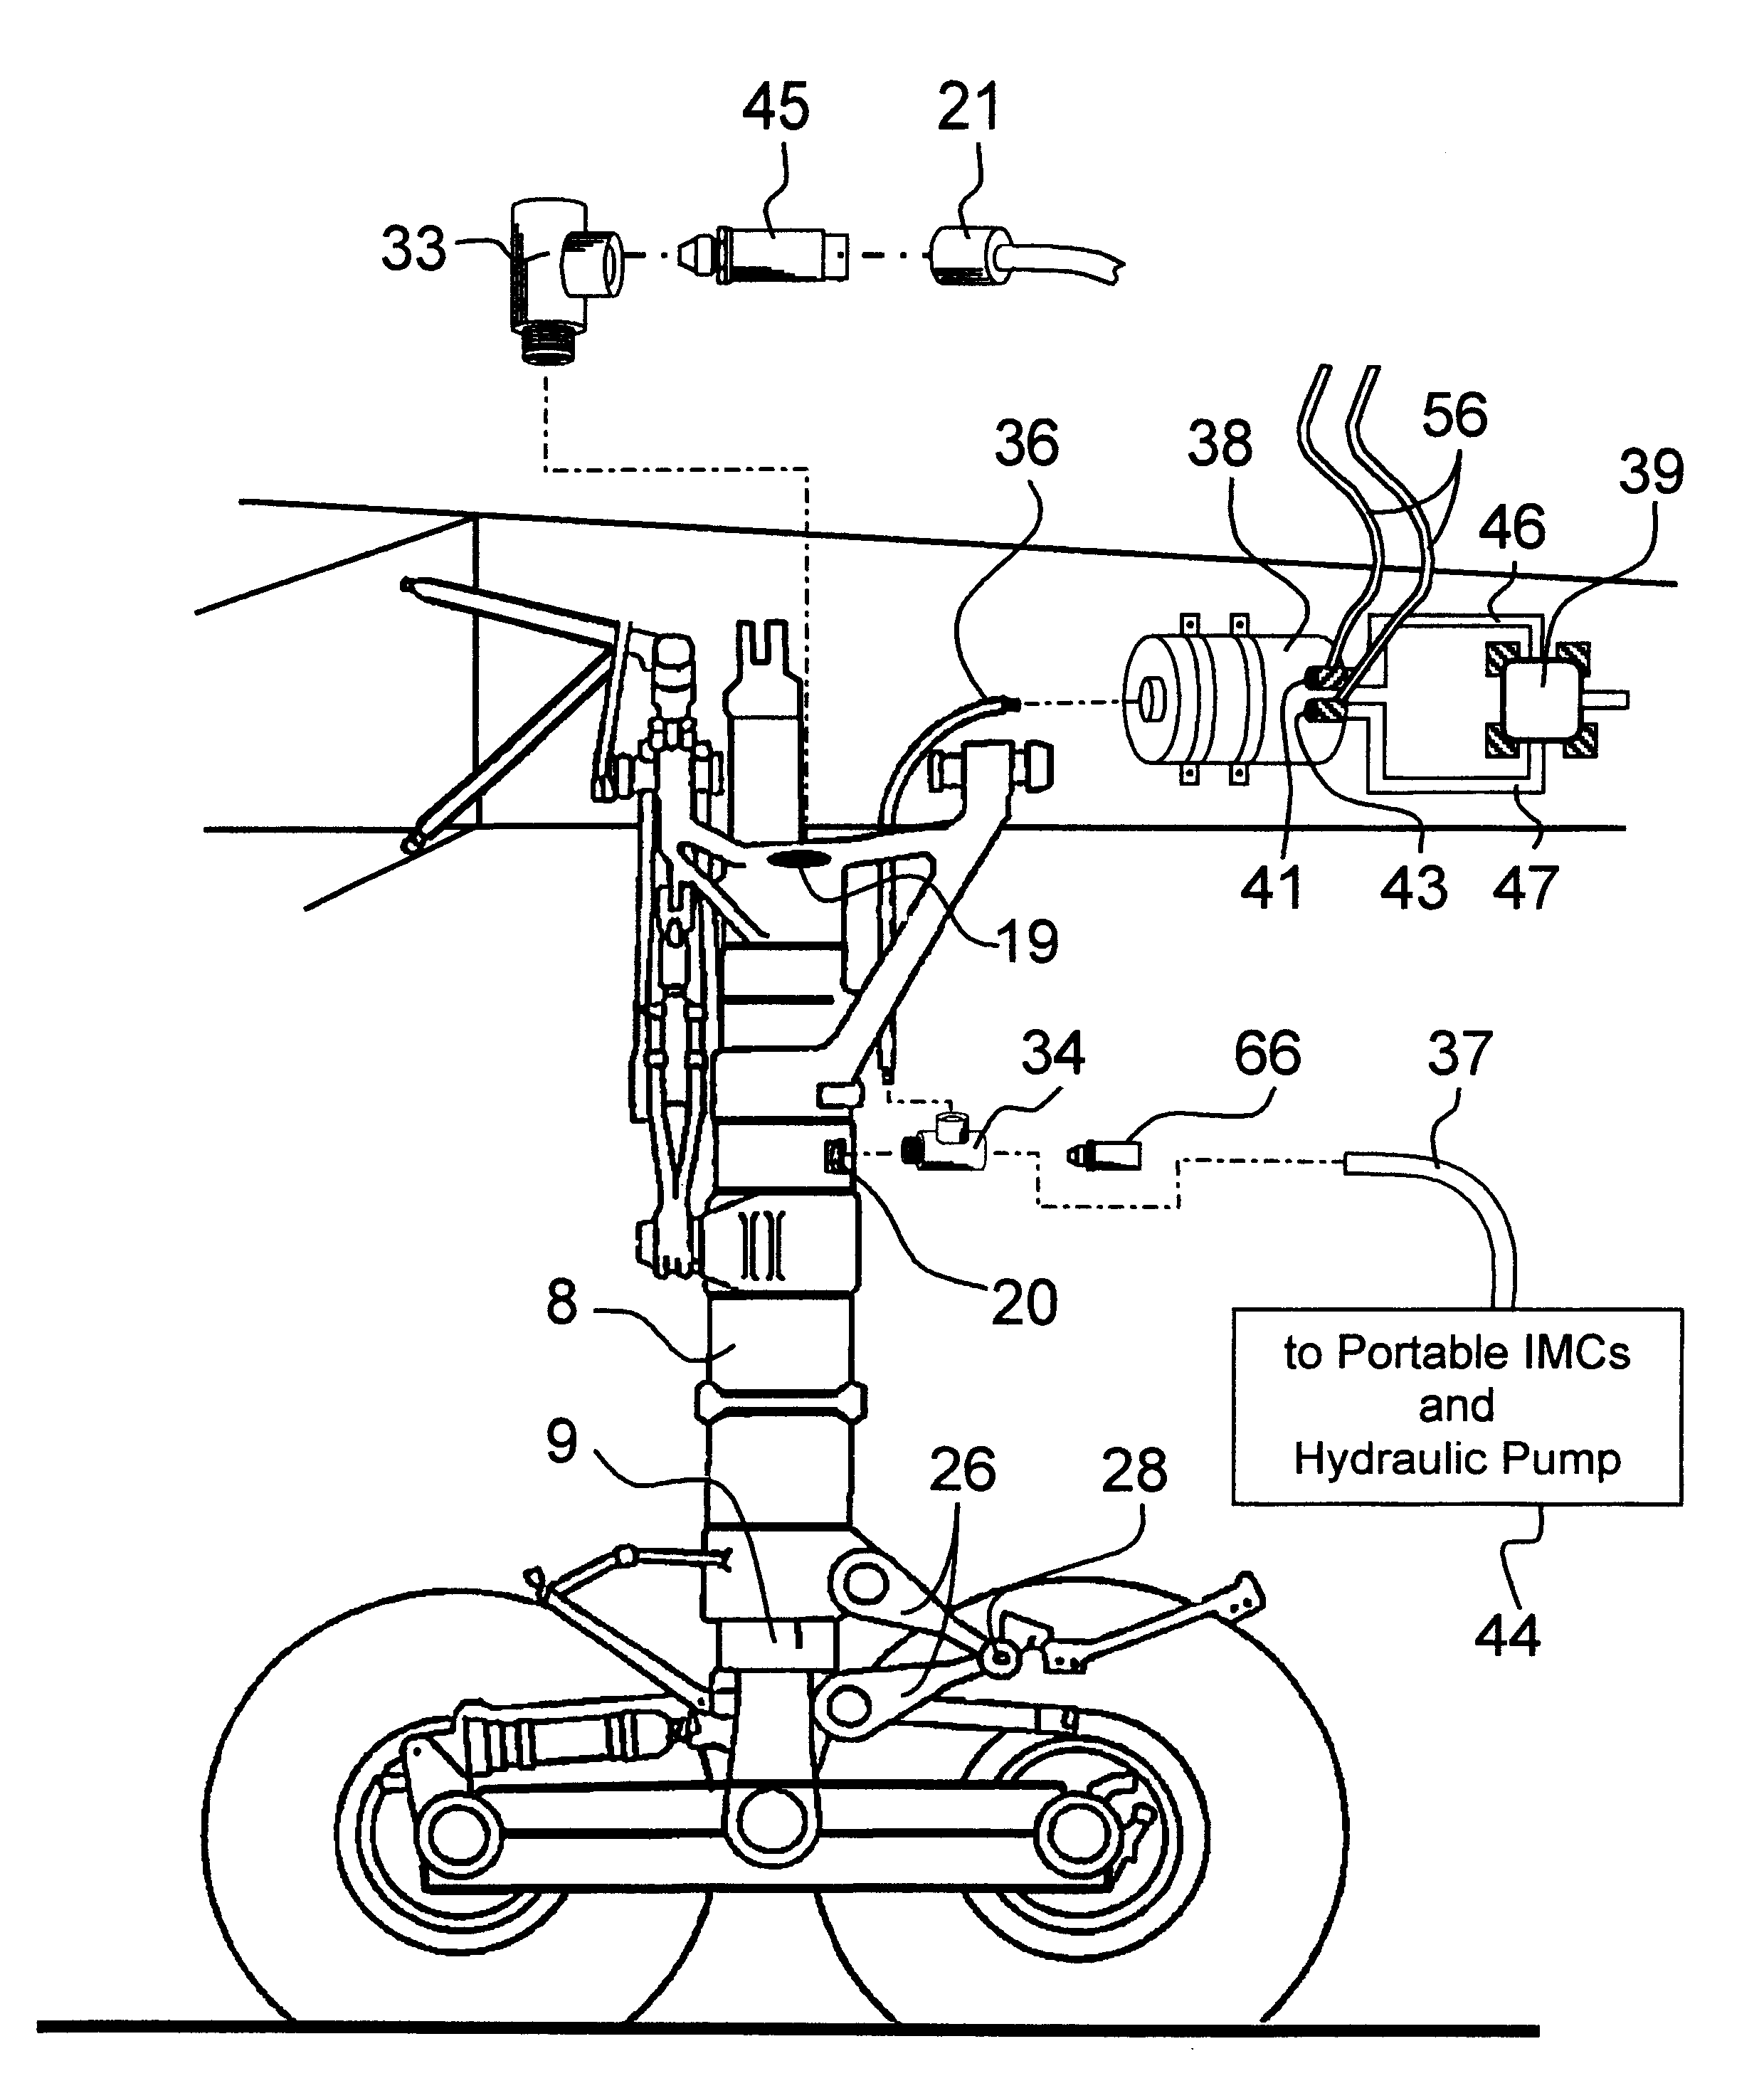 US06293141 20010925 D00000 trailer wiring diagrams, trailer wiring information, trailer,7 Pin Rocker Switch Wiring Diagram